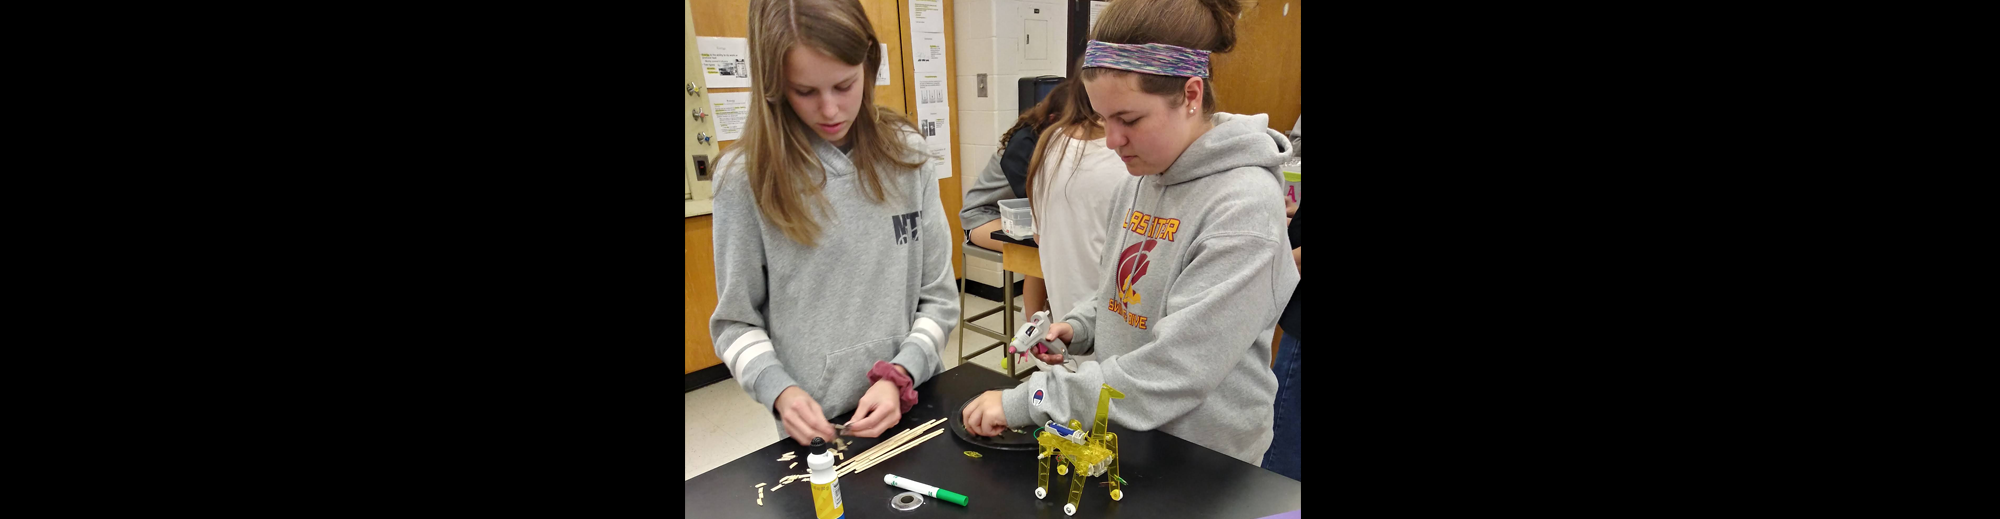 two female students working on a STEM project